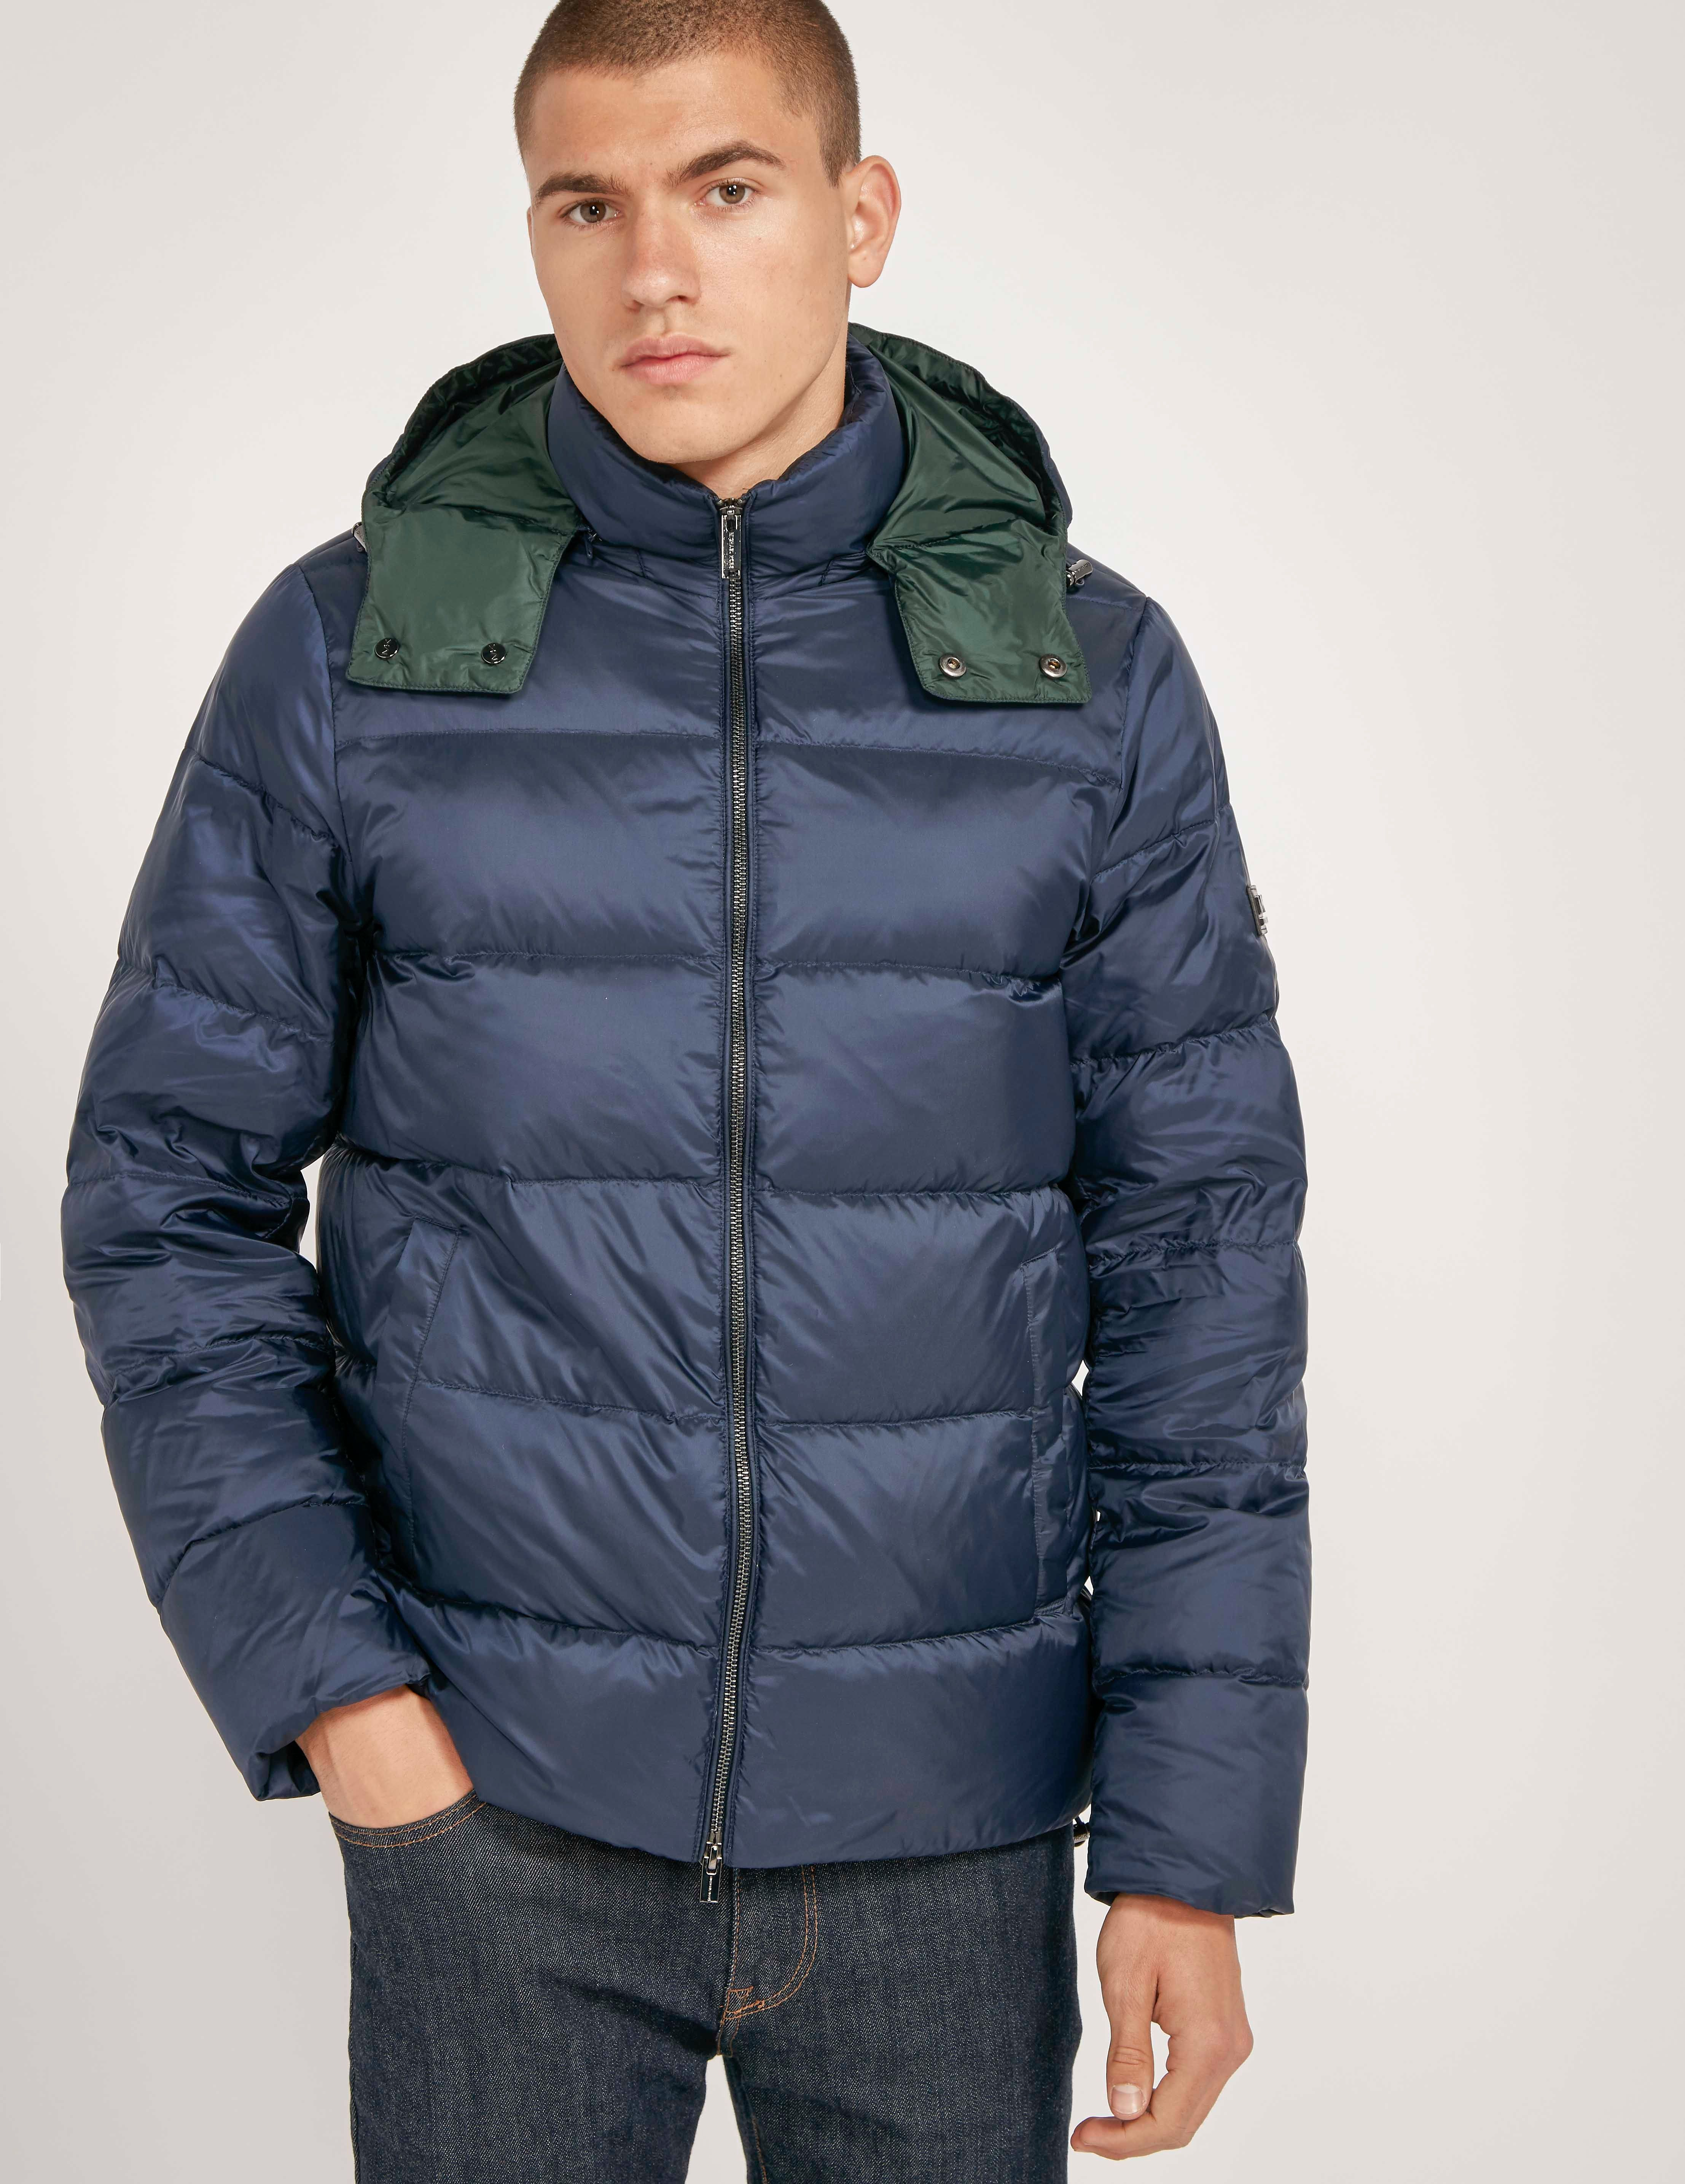 Michael Kors Quilted Bubble Jacket